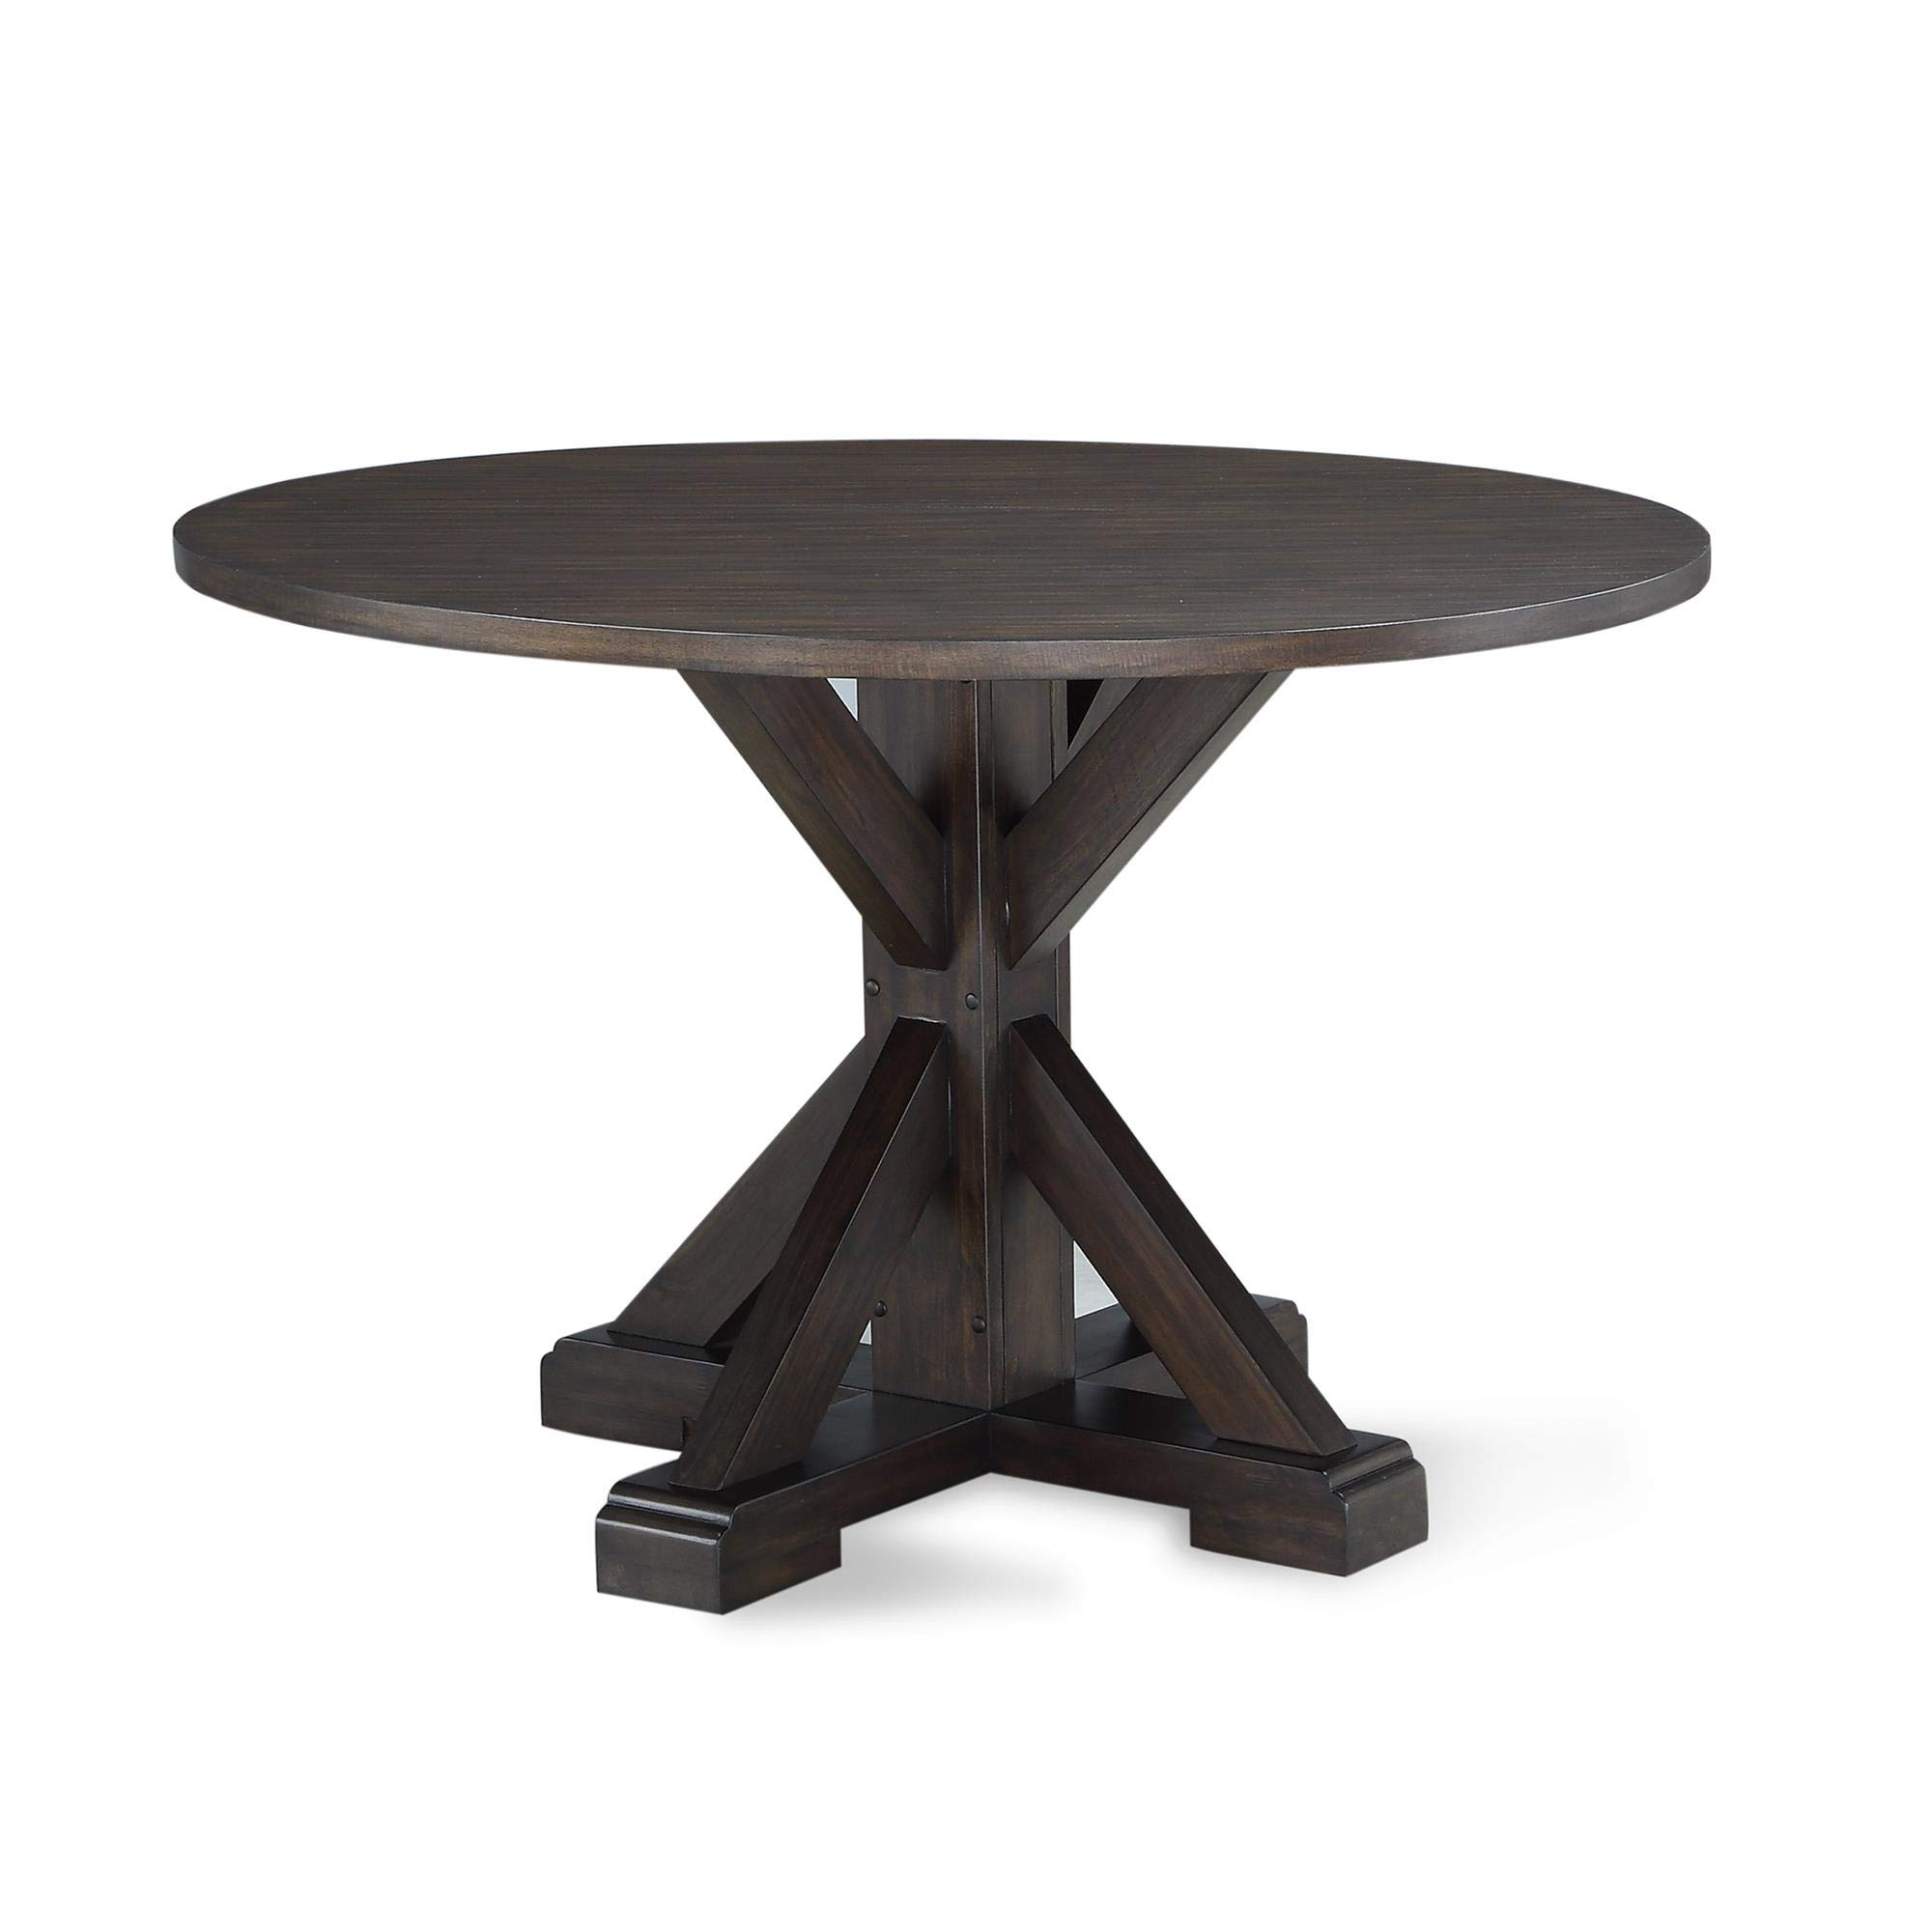 Dorel Living DA8135T Lanley Round, Rustic Brown Dining Table, by Dorel Living (Image #1)